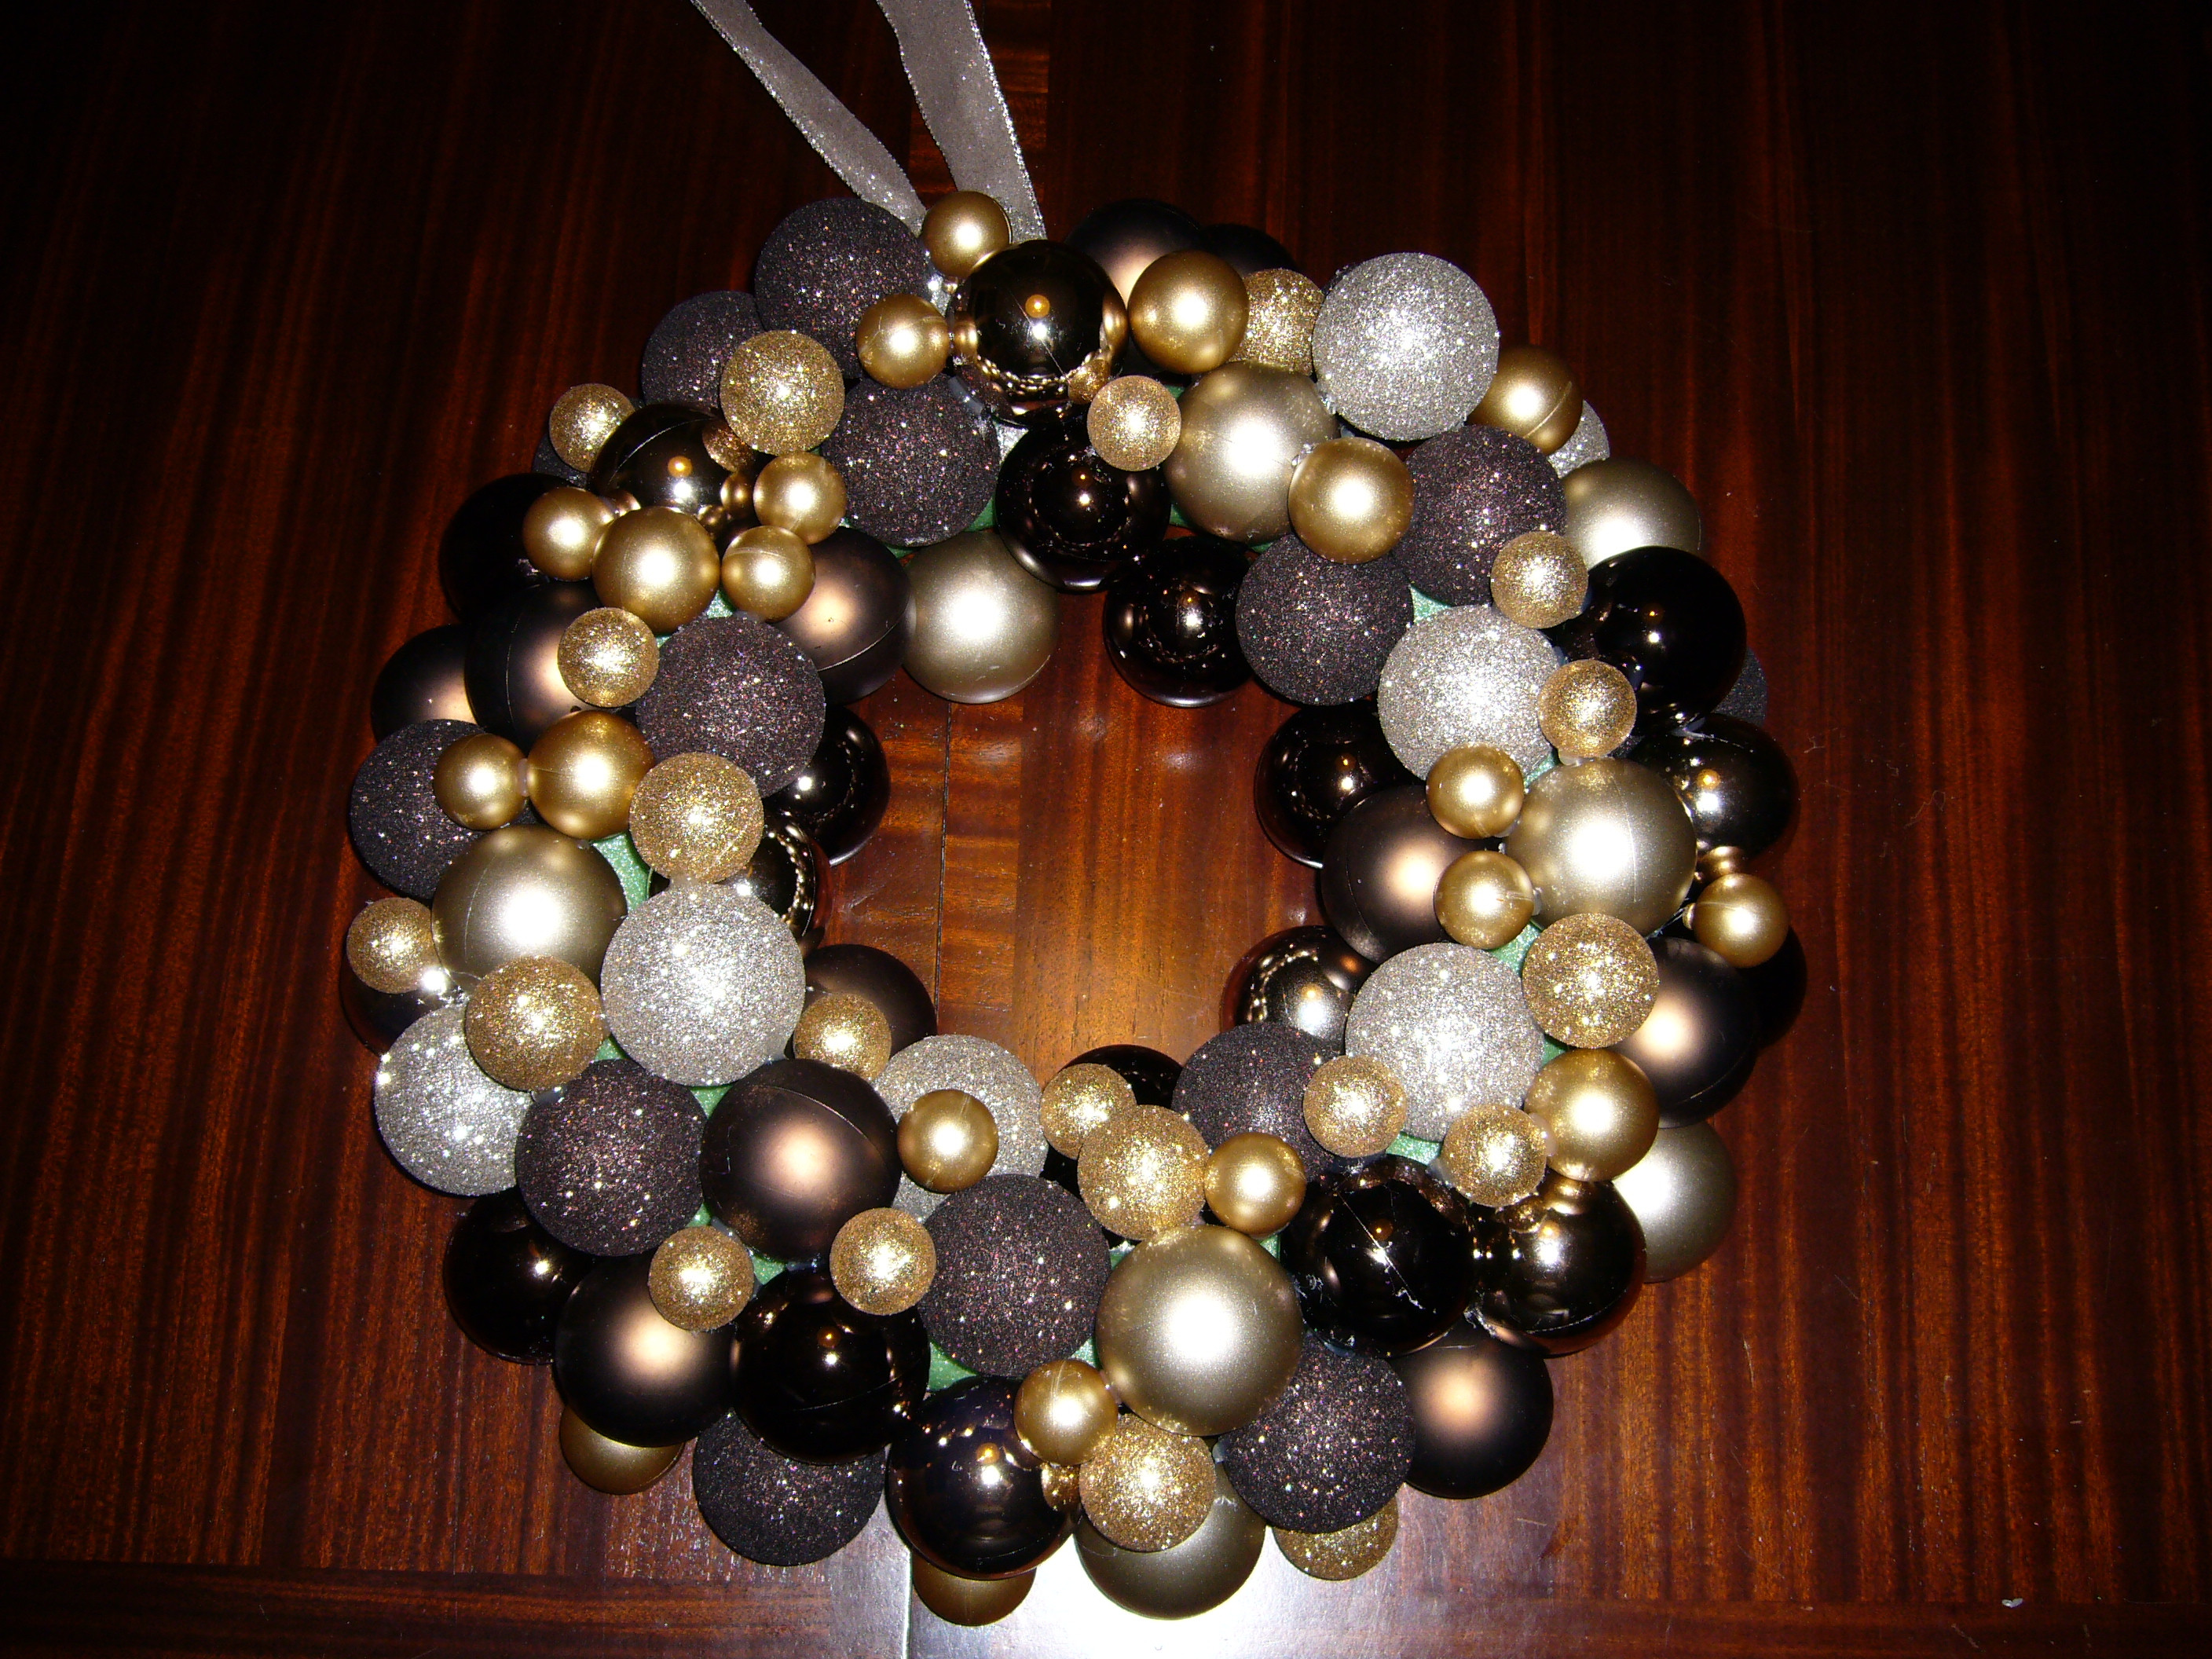 Best ideas about DIY Ornament Wreath . Save or Pin DIY Holiday Ornament Wreath Now.